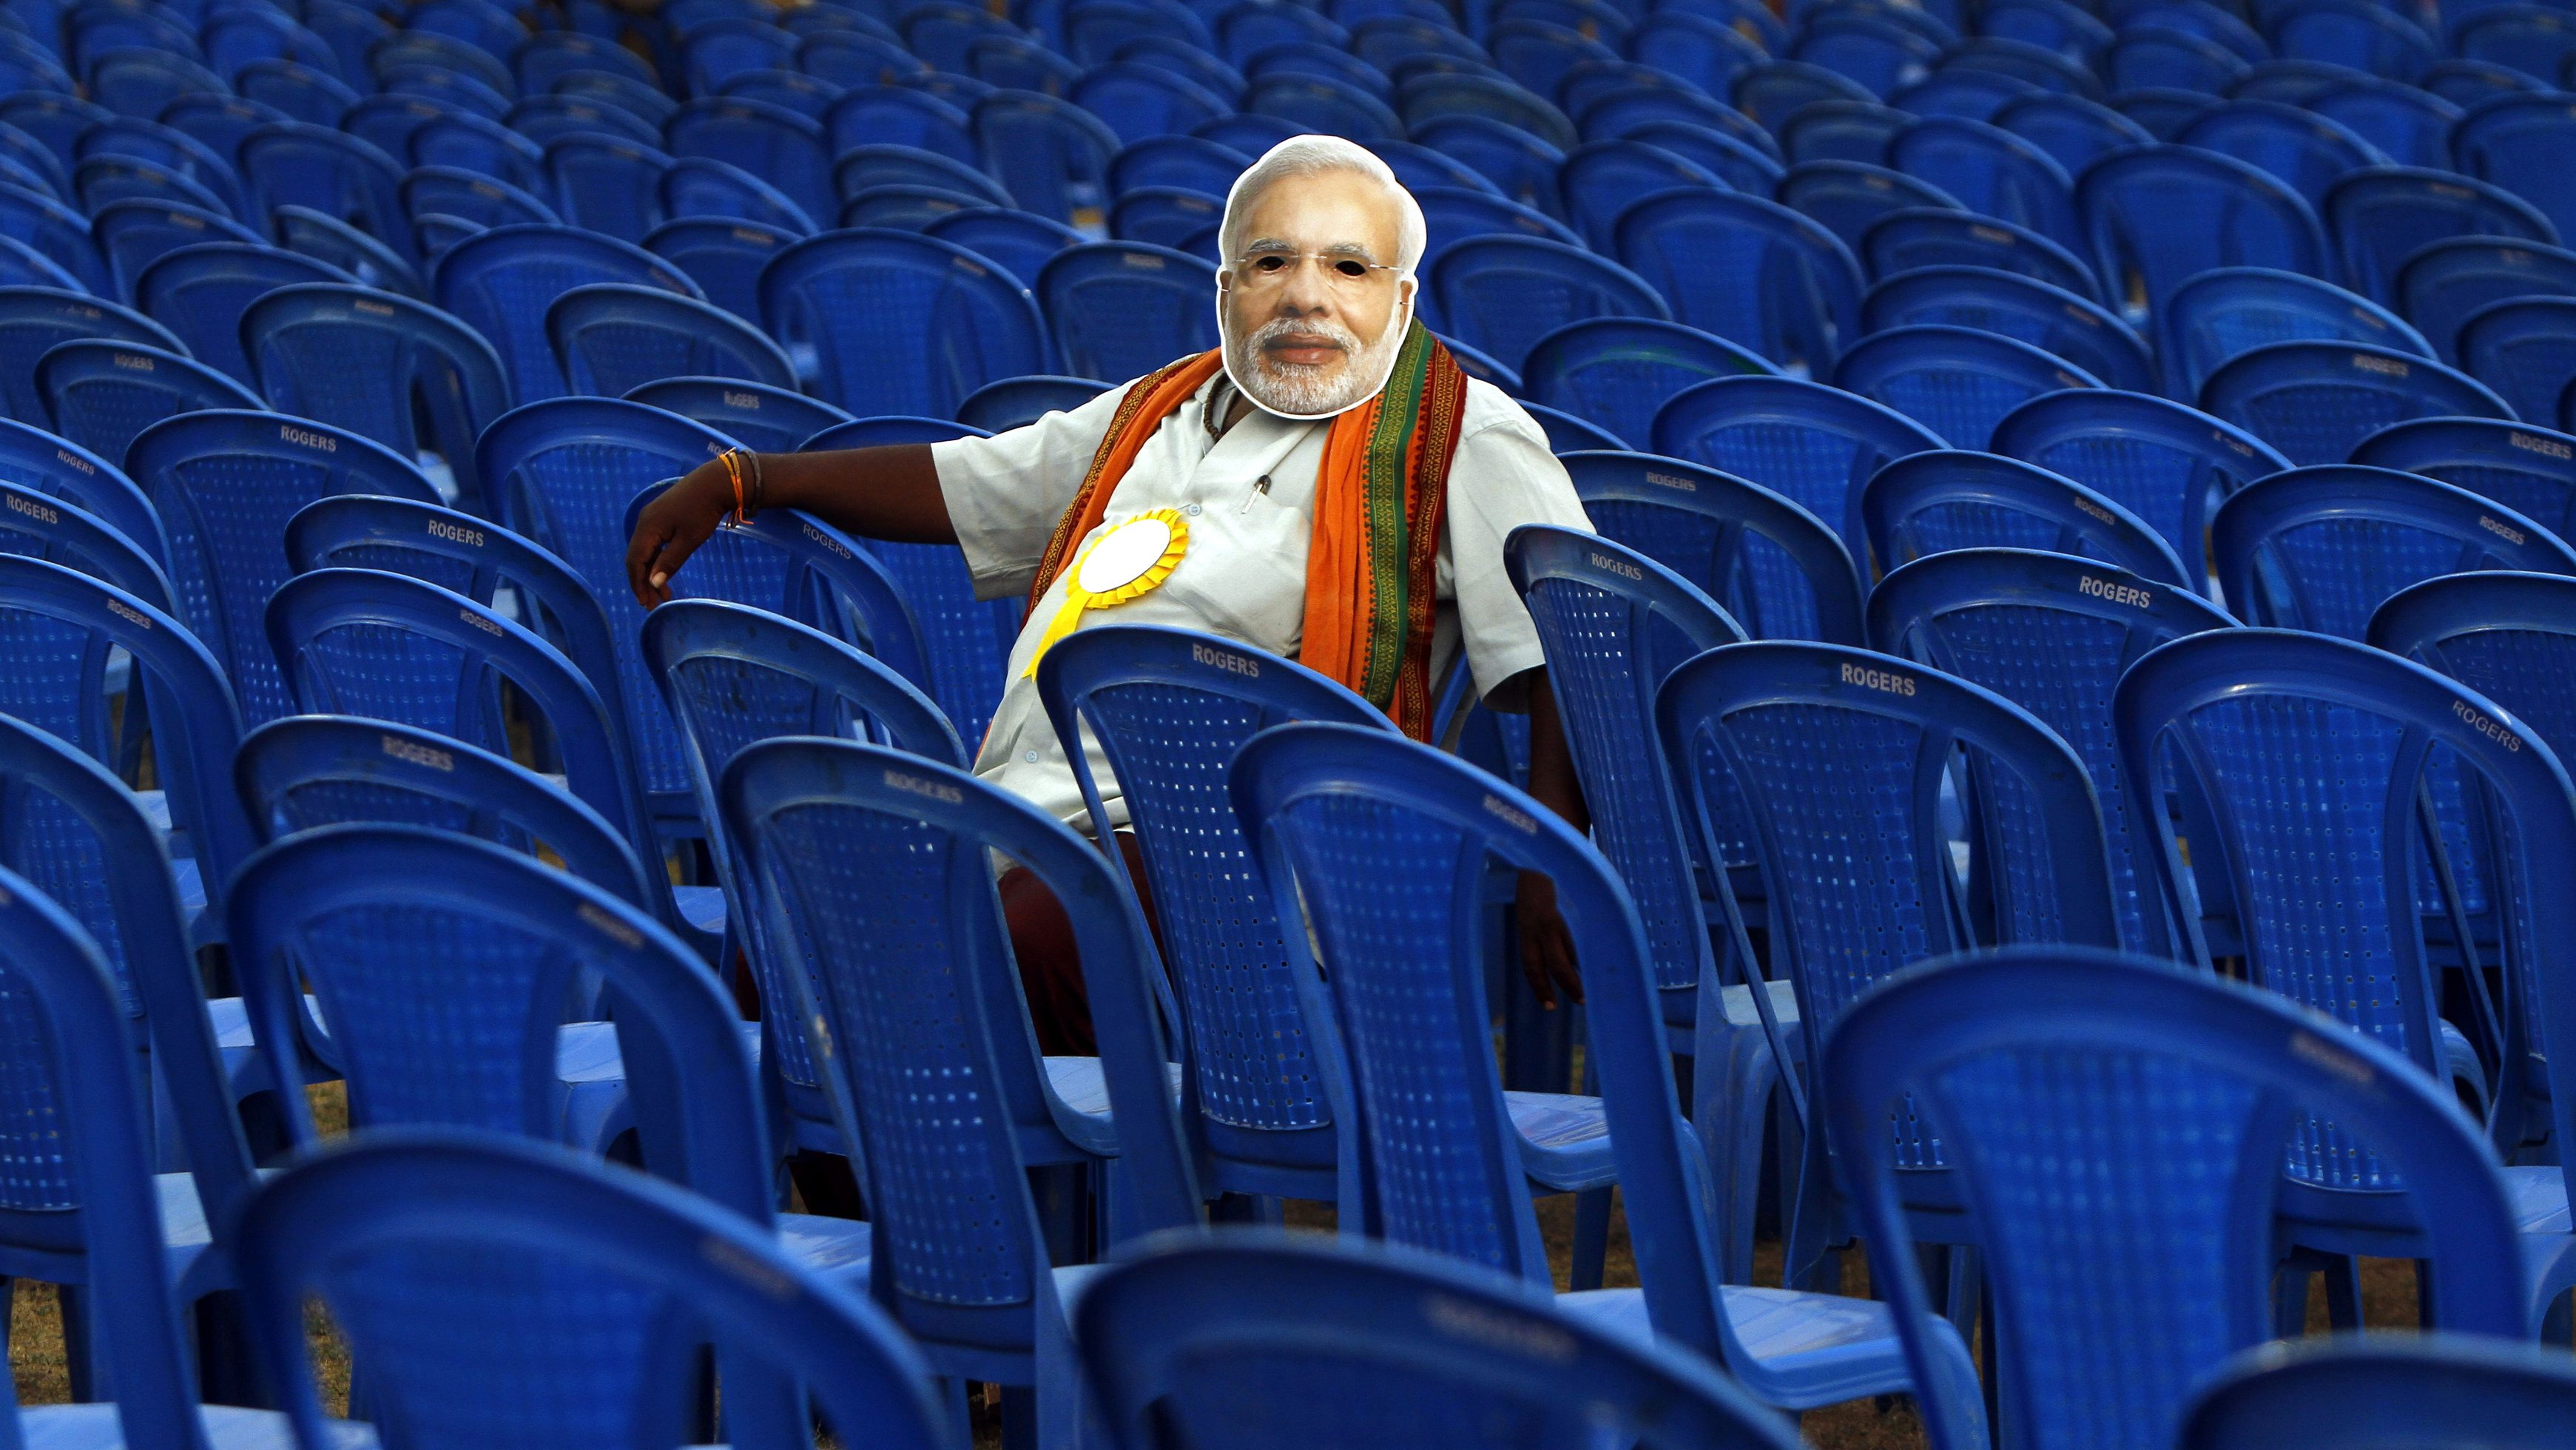 A supporter of Modi, prime ministerial candidate for BJP, wears a mask depicting Modi as he sits before the start of an election campaign rally in the southern Indian city of Chennai